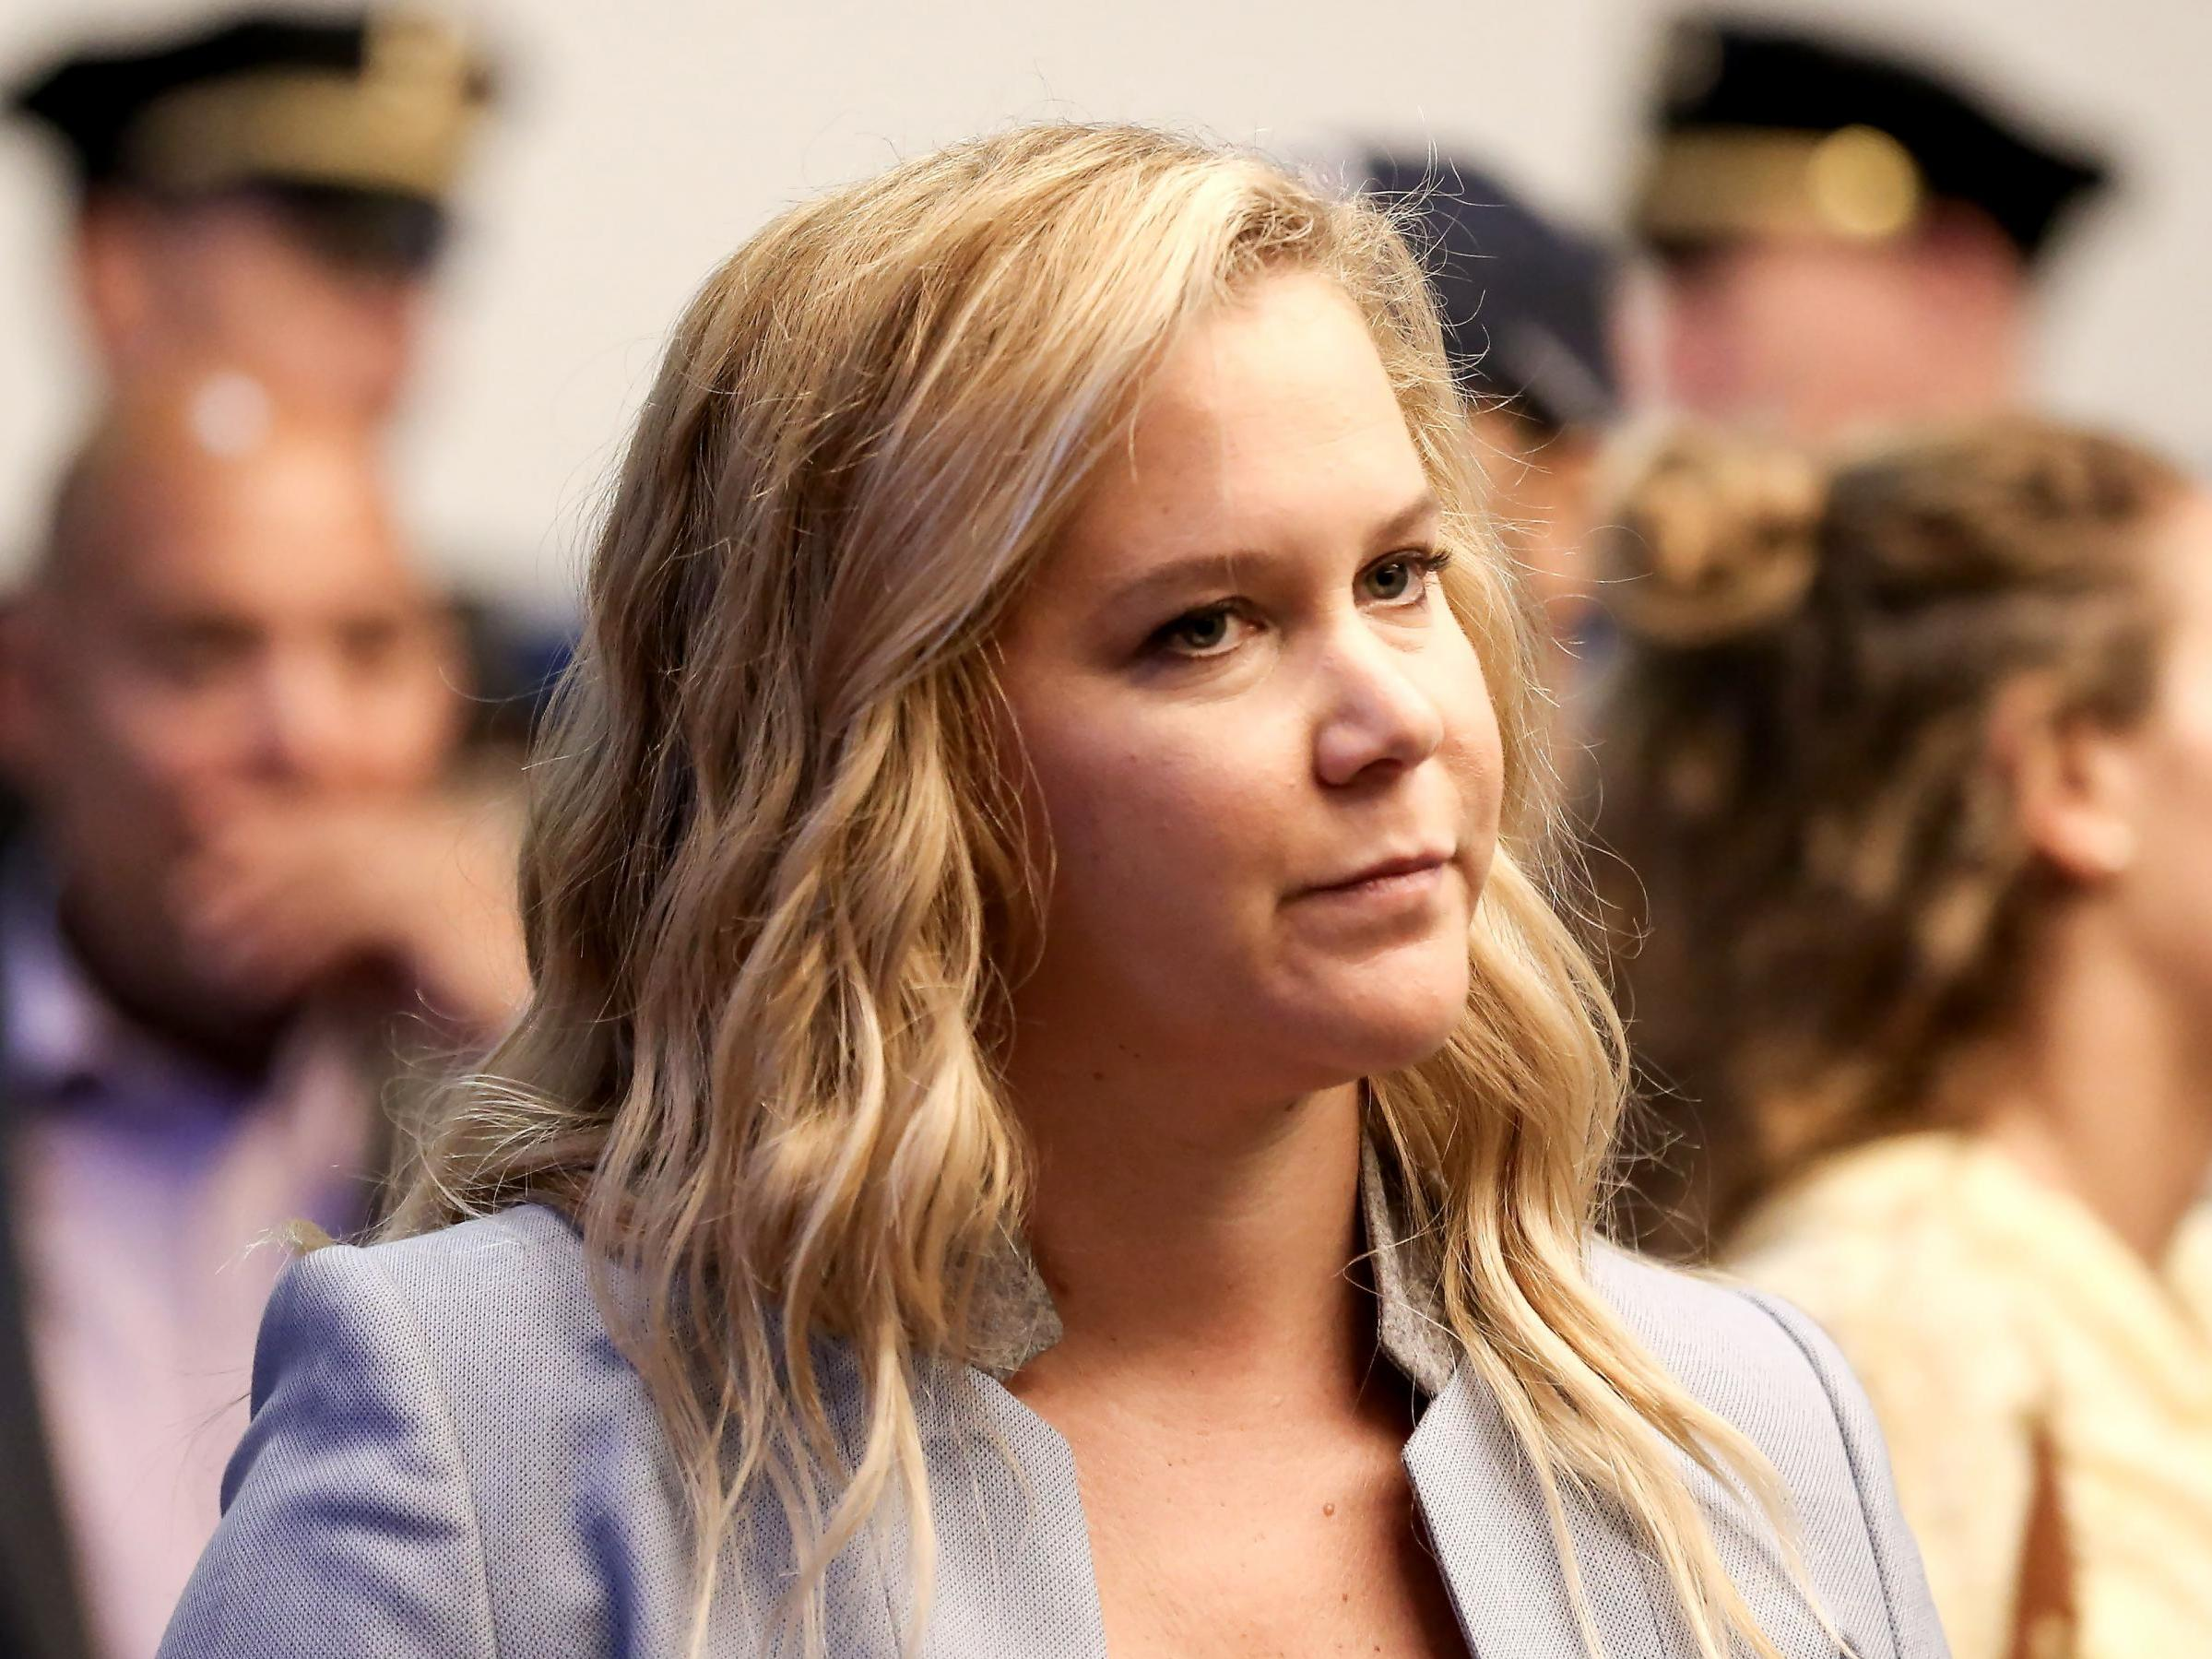 Amy Schumer felt 'worried' about returning to work after birth of son: 'I've cried from missing him'